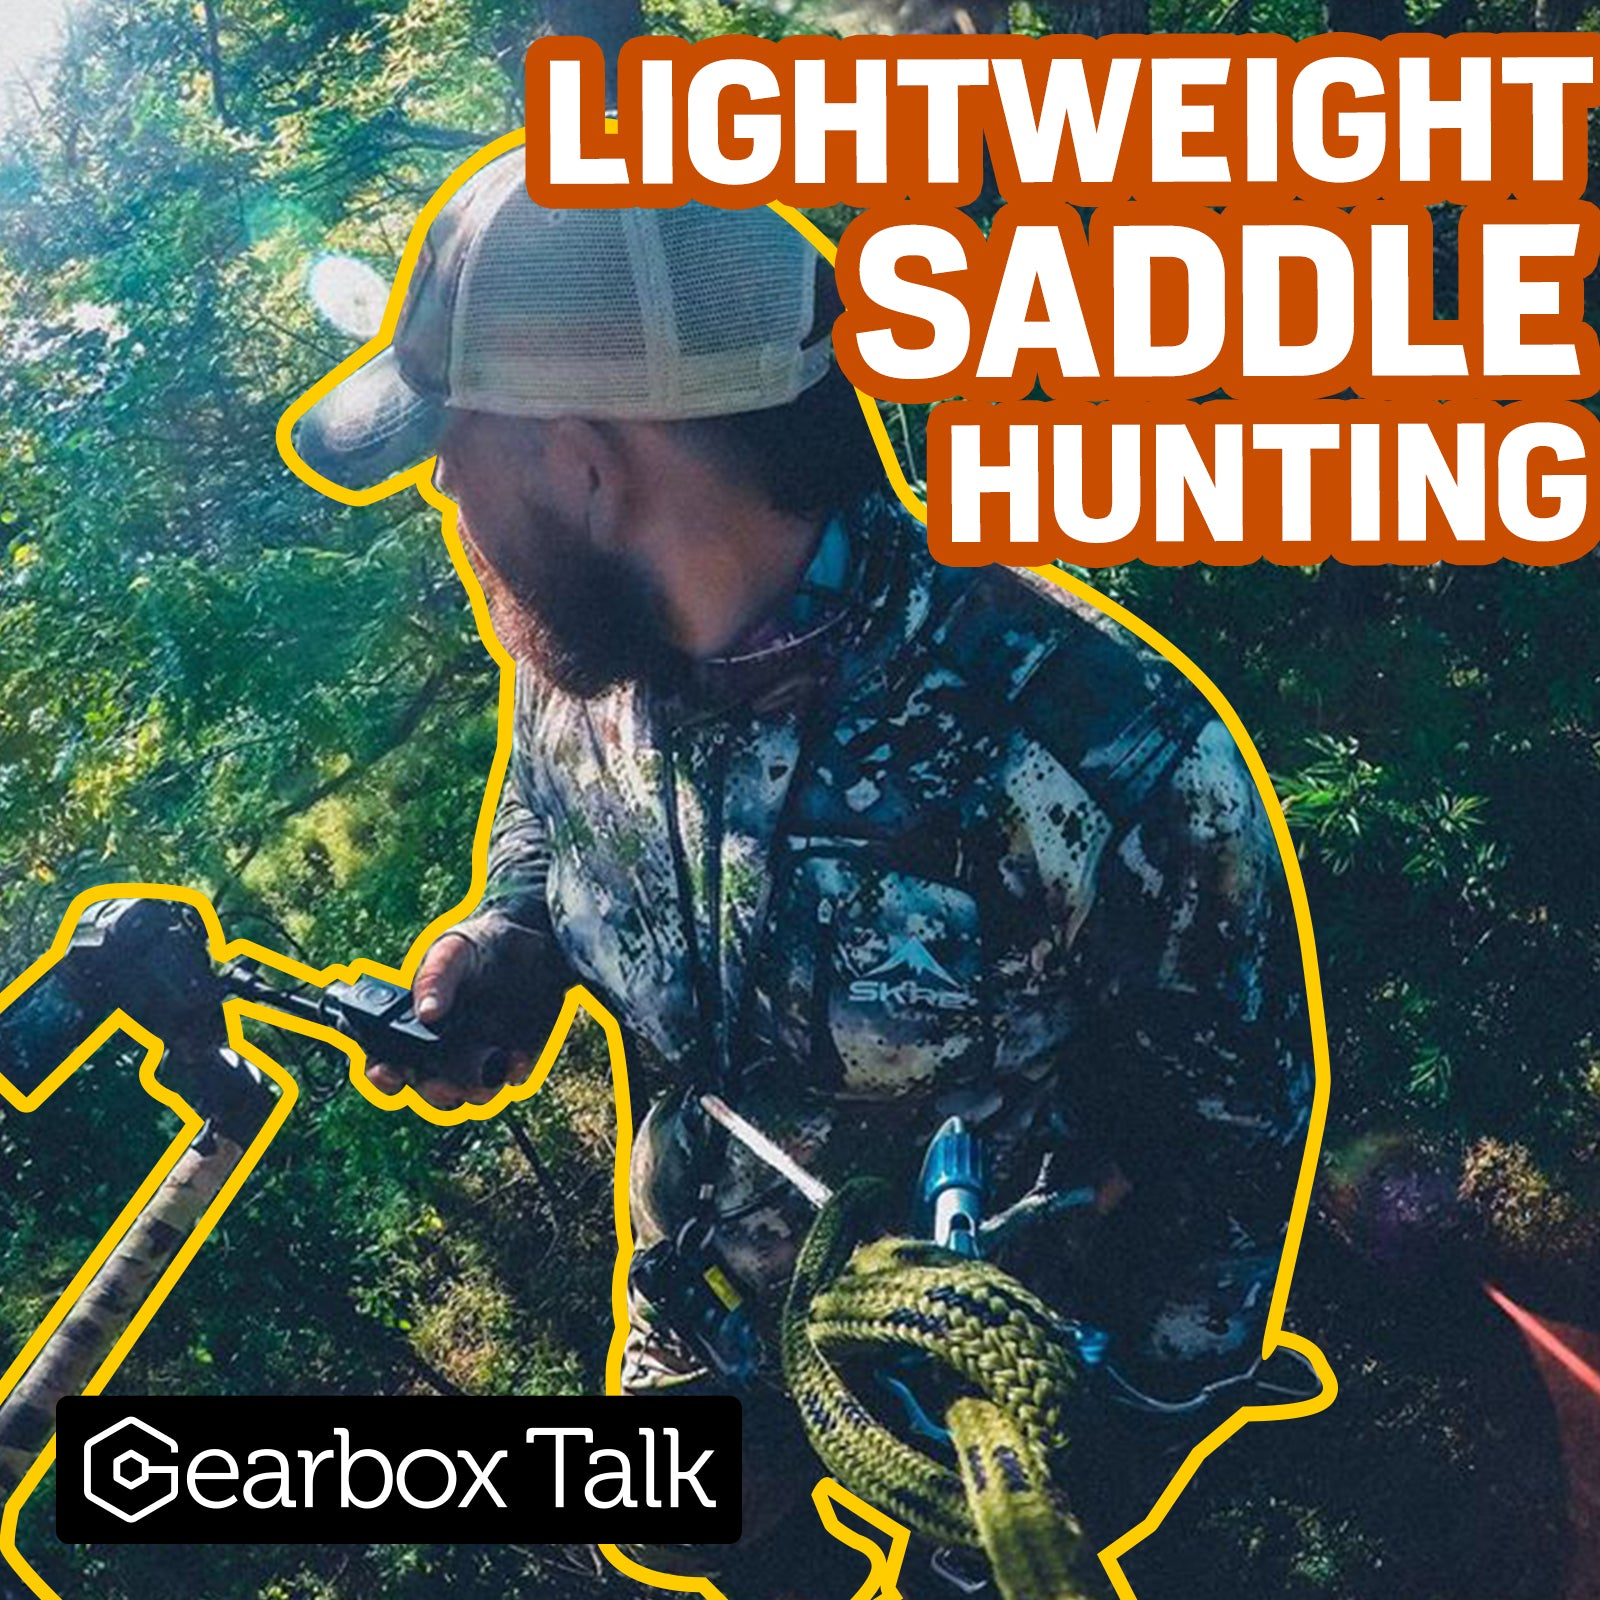 Parker McDonald: 2020 Saddle Hunting Gear Guide and Review